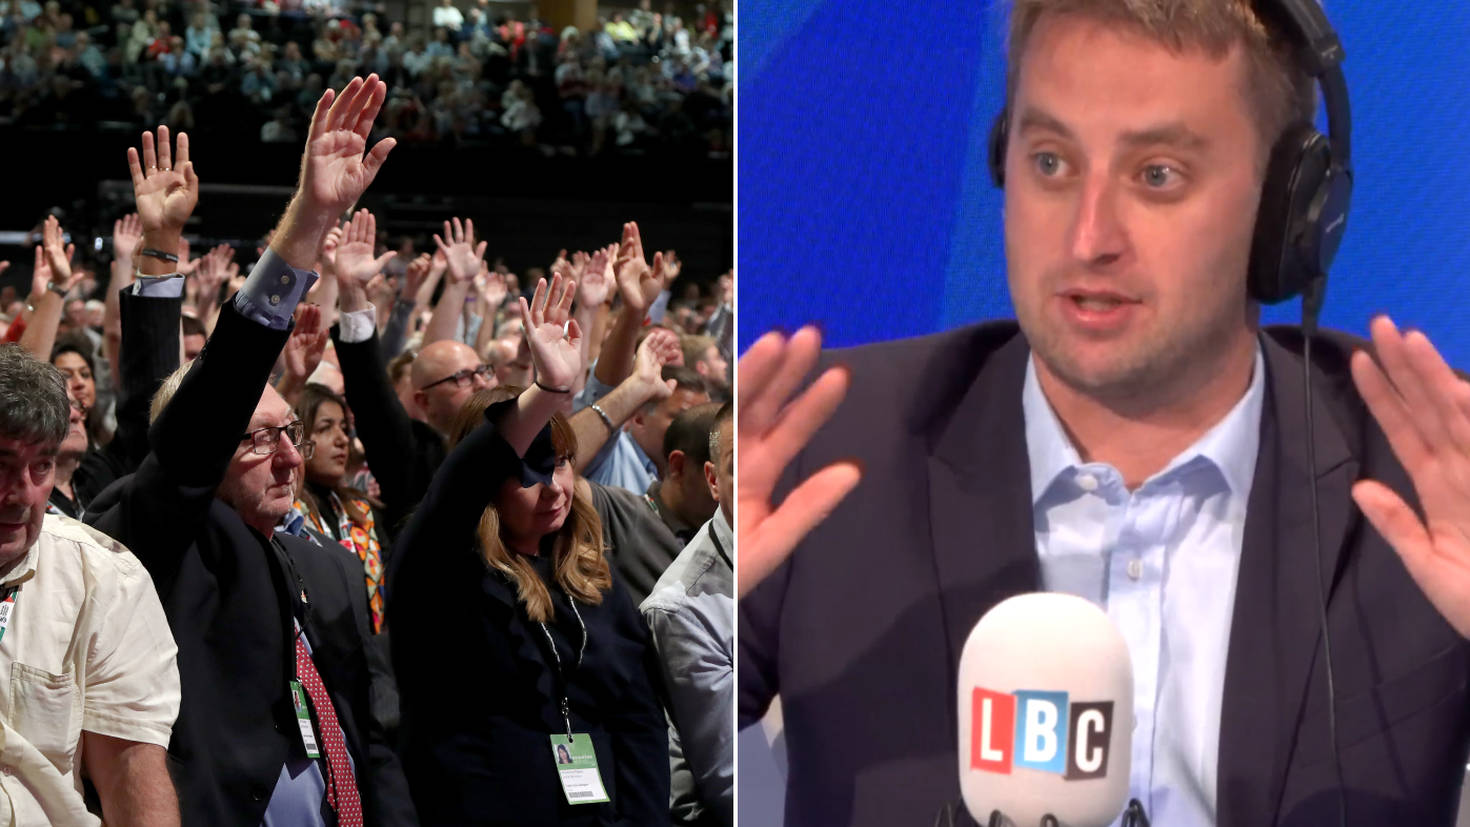 Theo Usherwood Explains The Labour Party Conference Brexit Vote Chaos